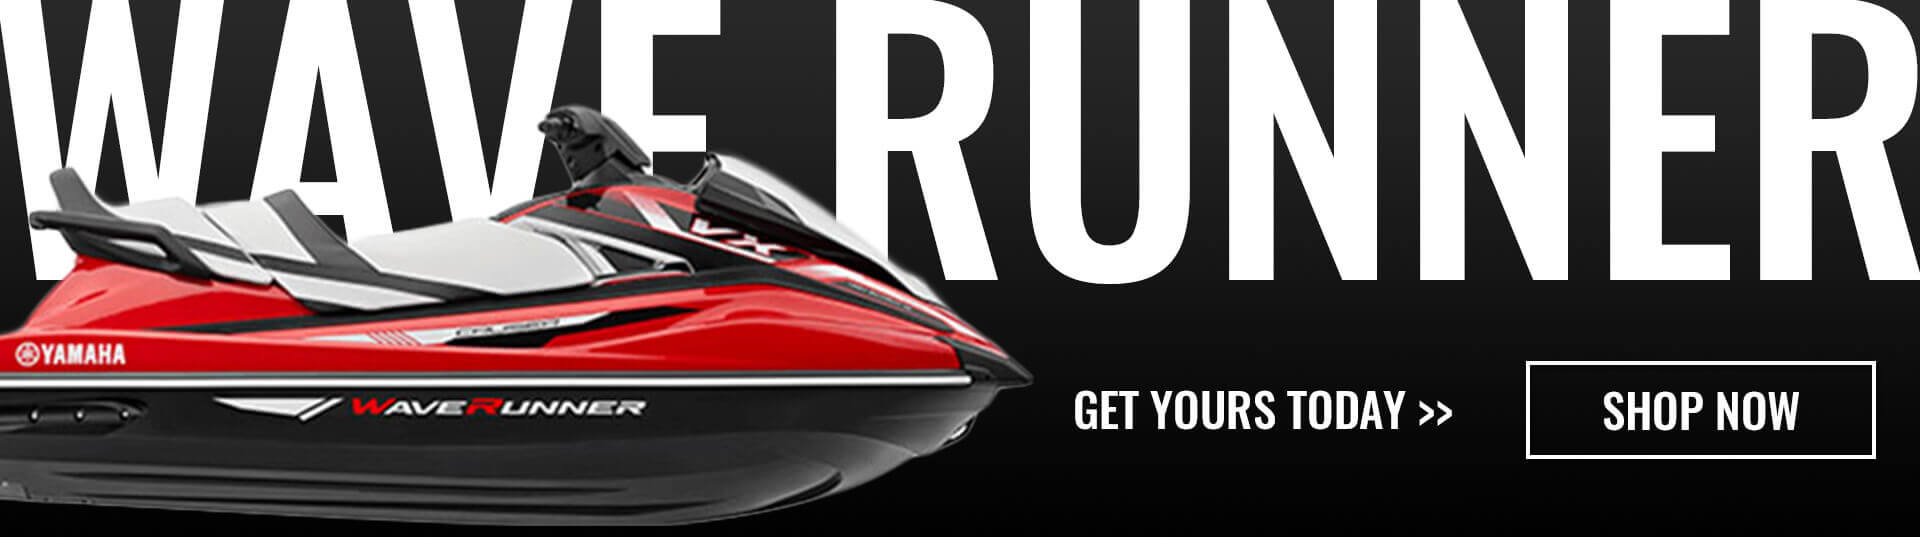 Shop Yamaha Waverunners at Cycle World in Virginia Beach, VA